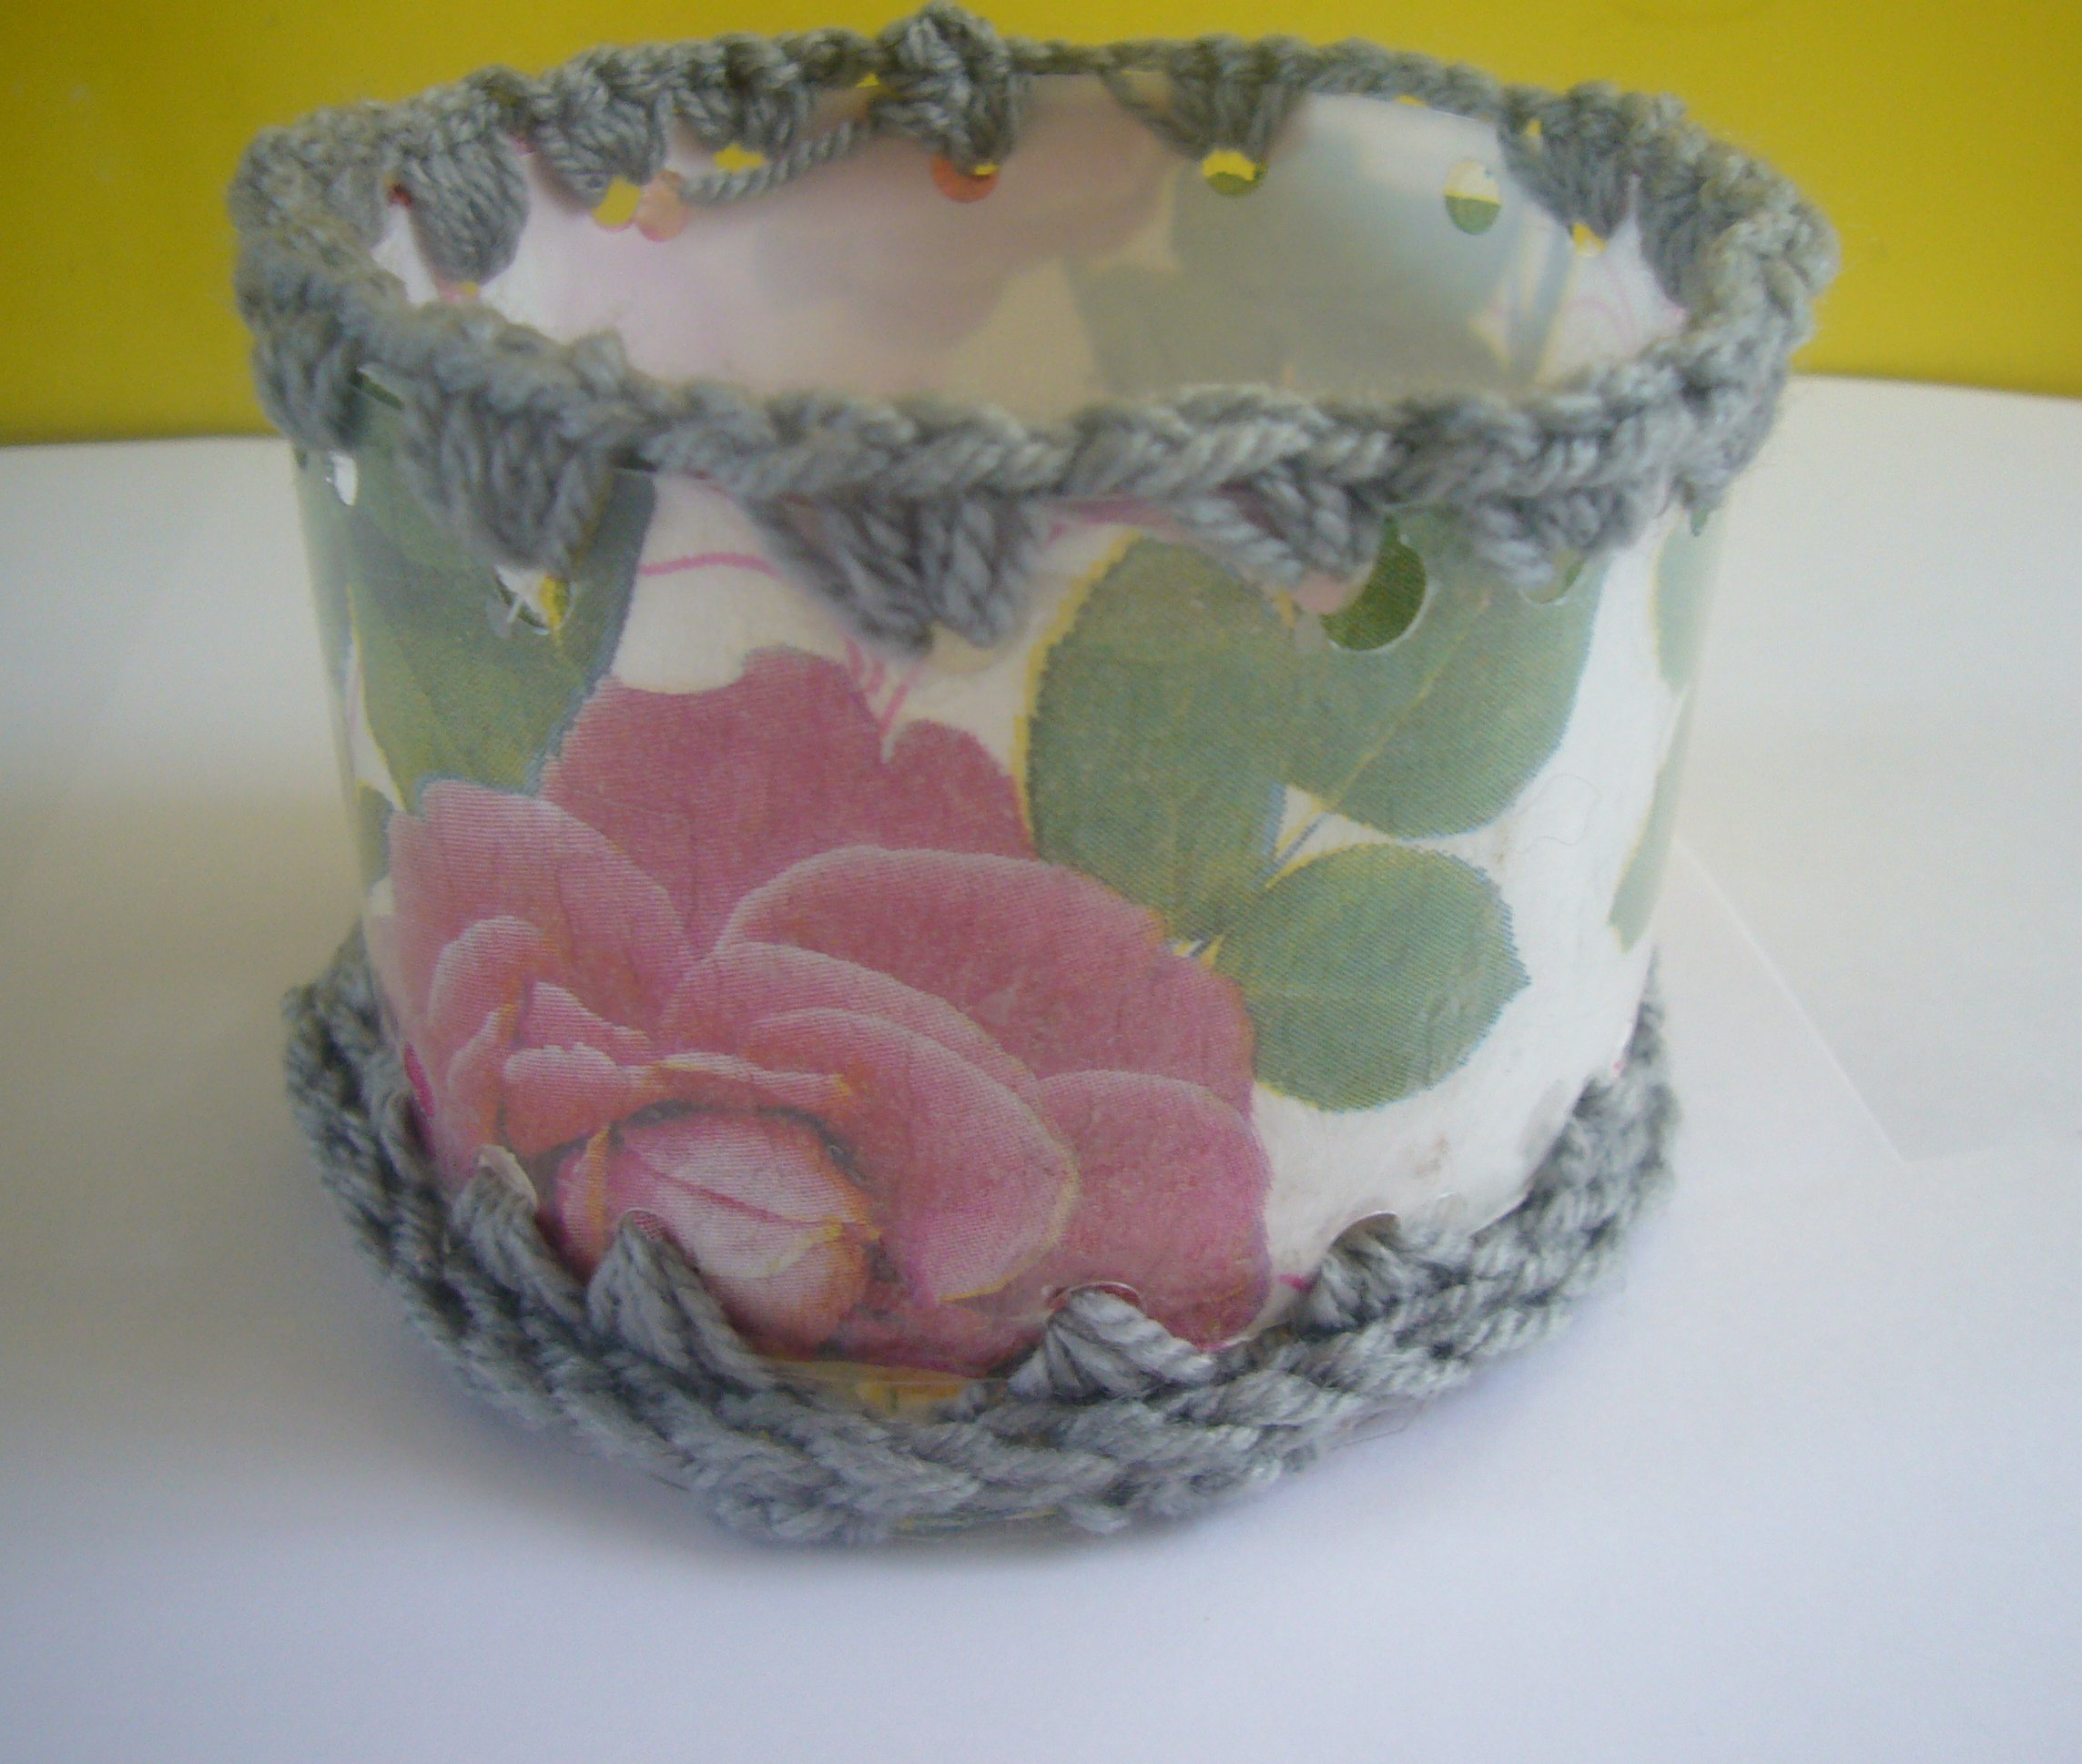 DIY Crafts, Decoupage Ideas, Recycled Crafts